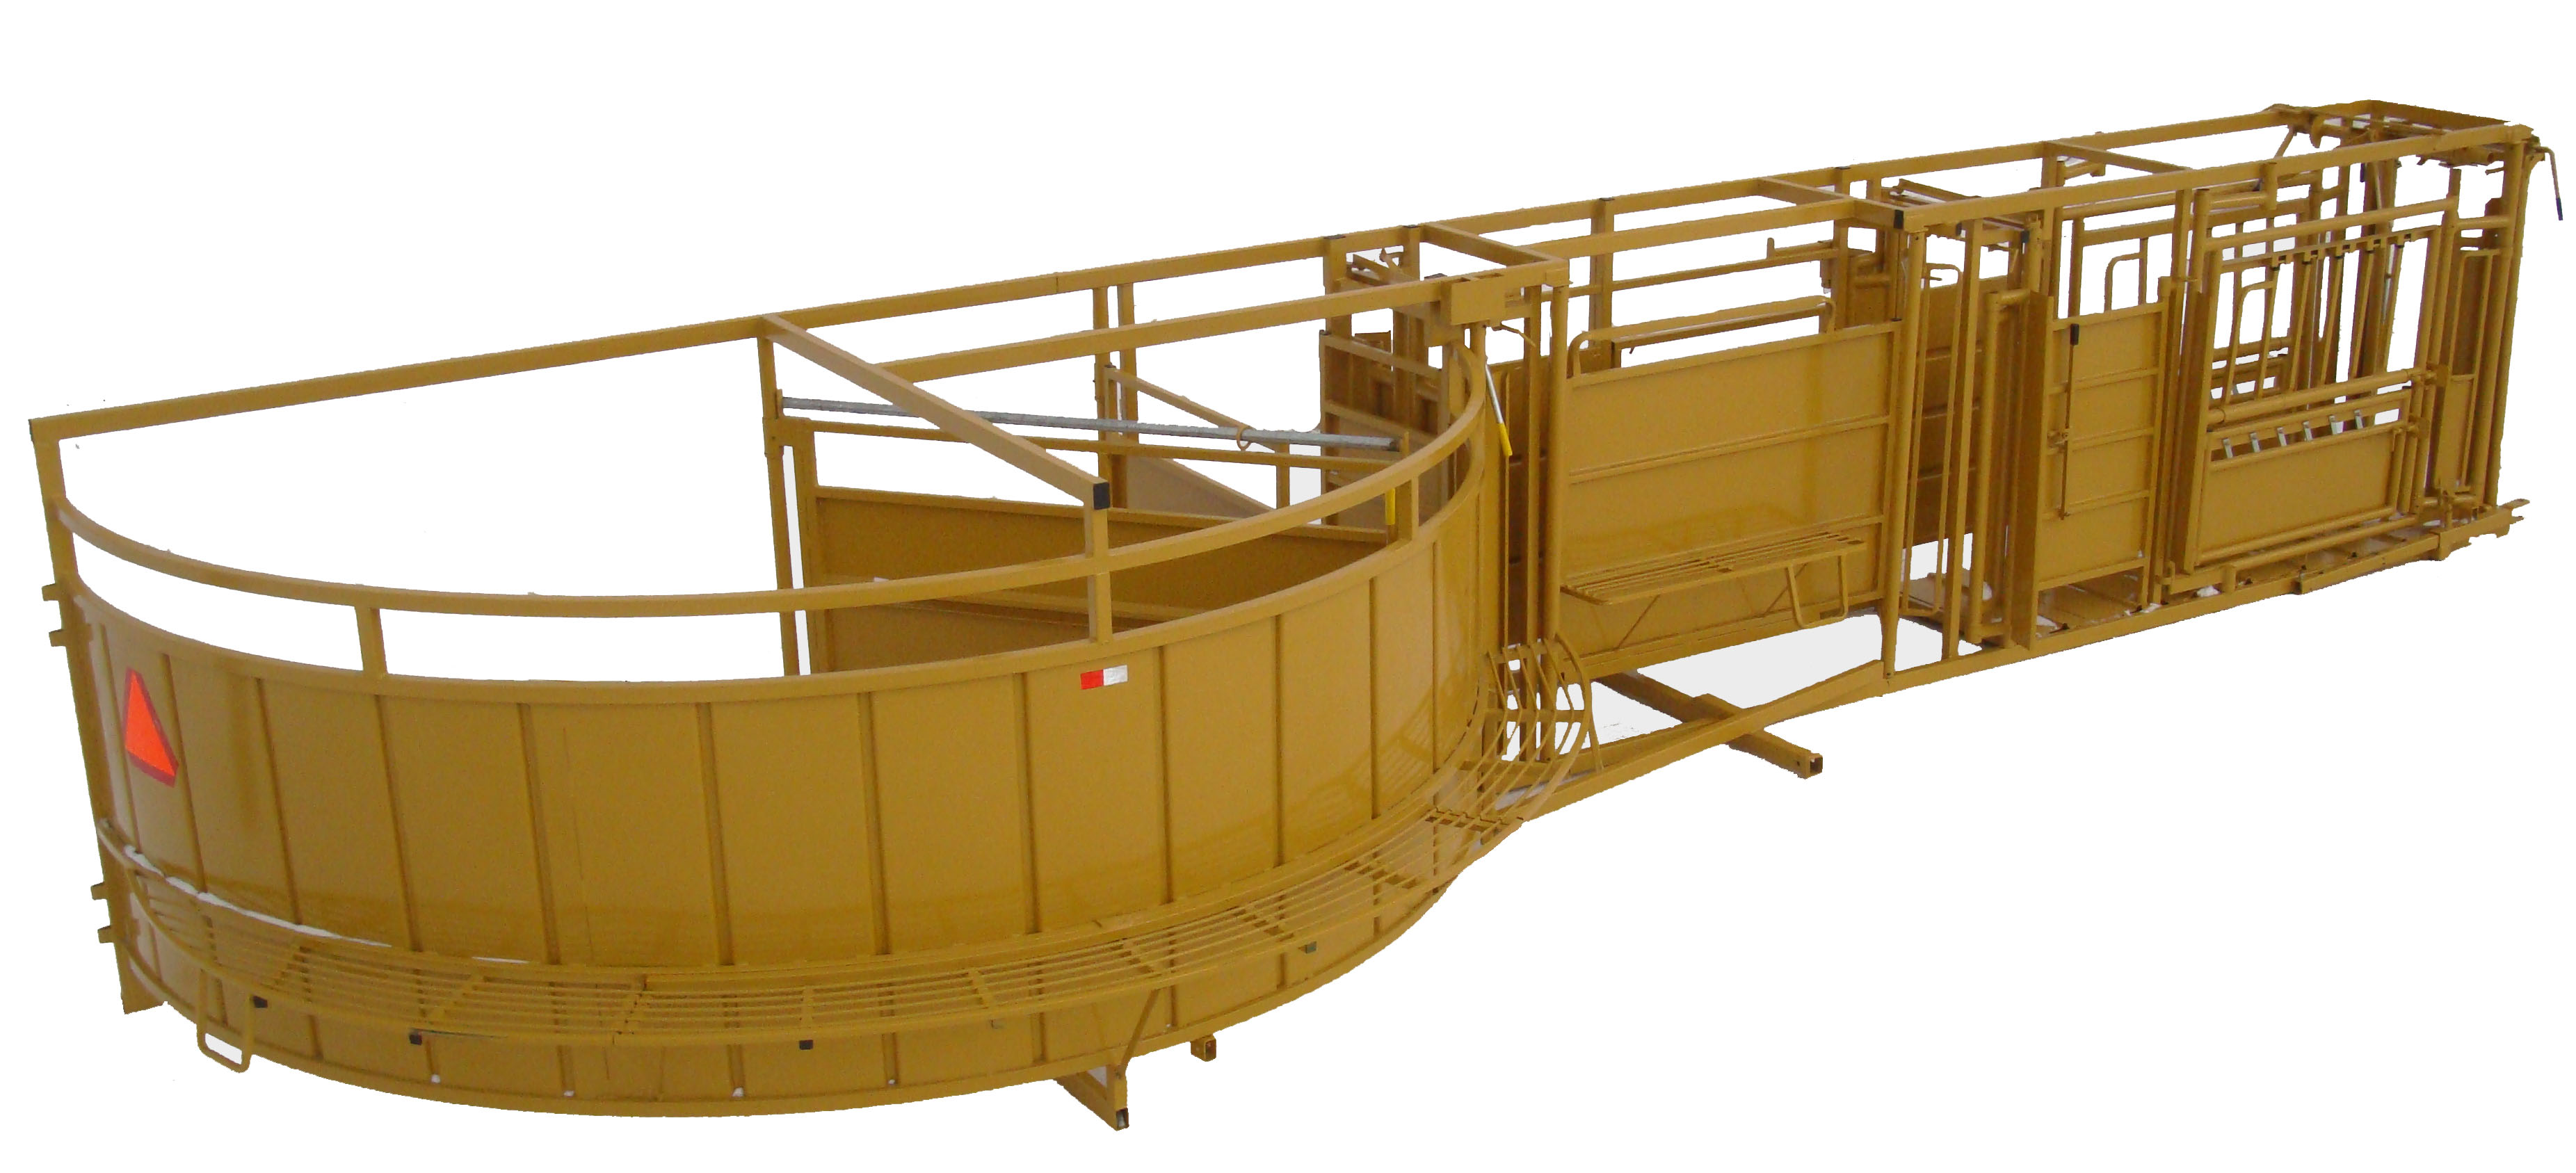 Tuff - Model PS1 - Portable Cattle Handling System